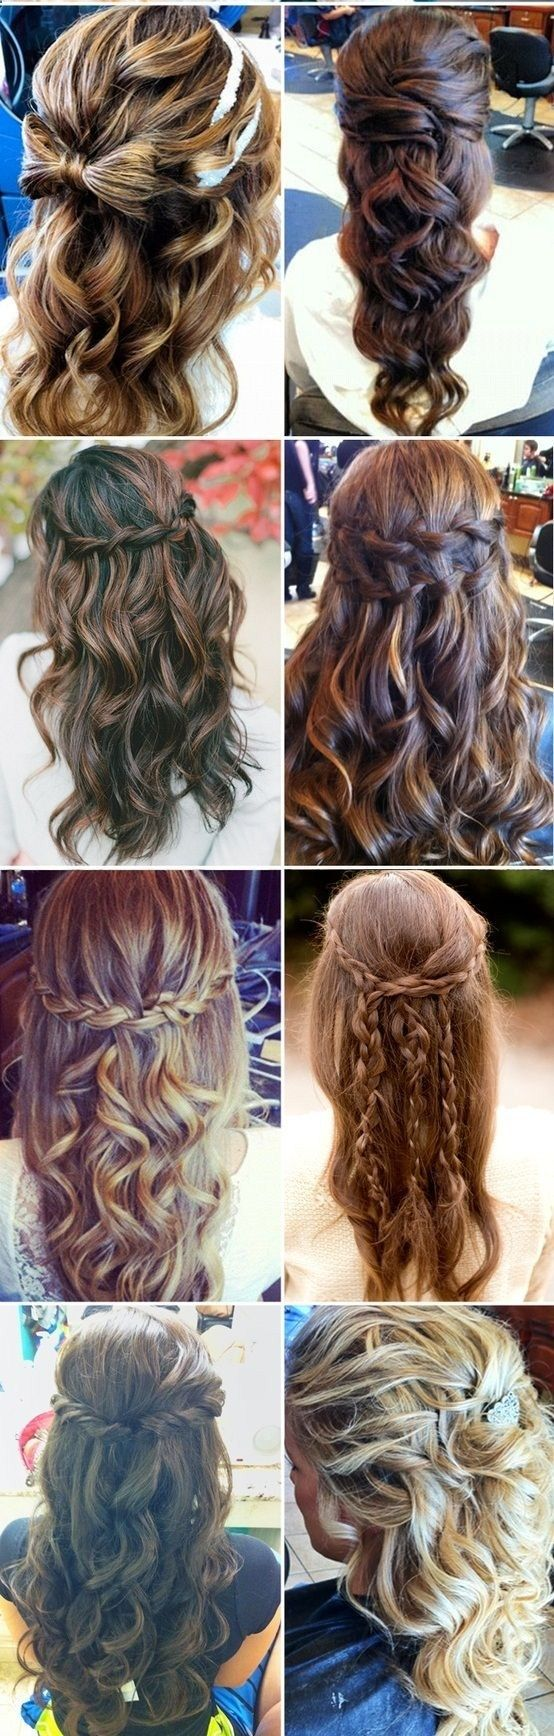 Half-up hair styles. I like the first one on the right, and the second, third and fourth on the left. (2)